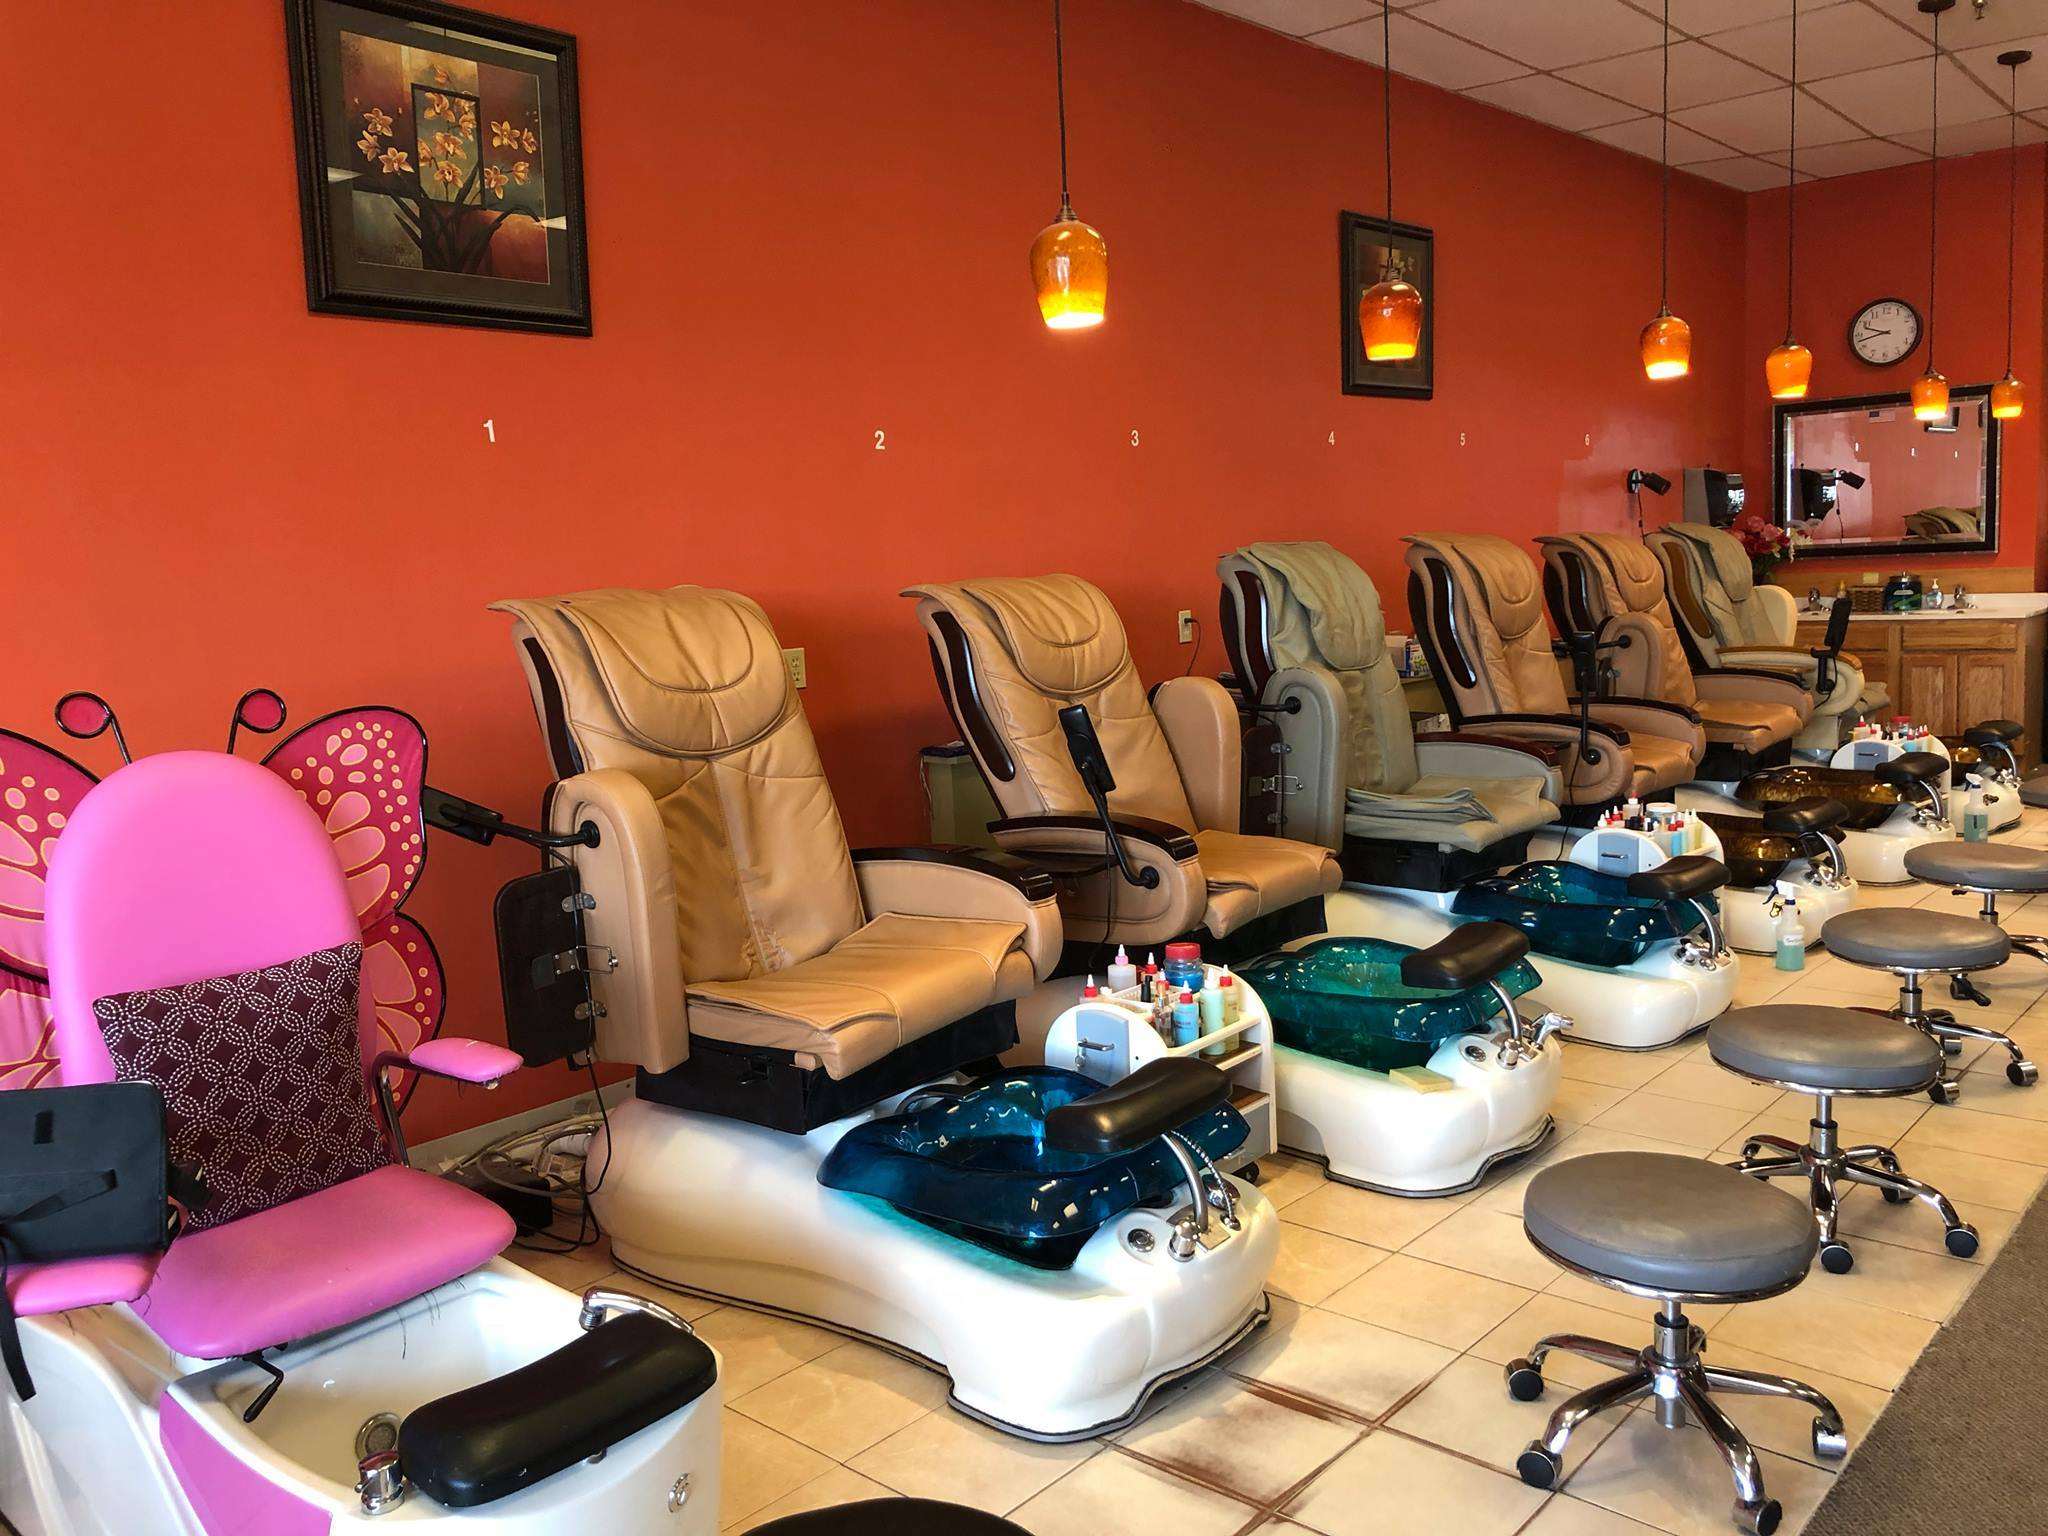 Best Nail Spa Center in Town